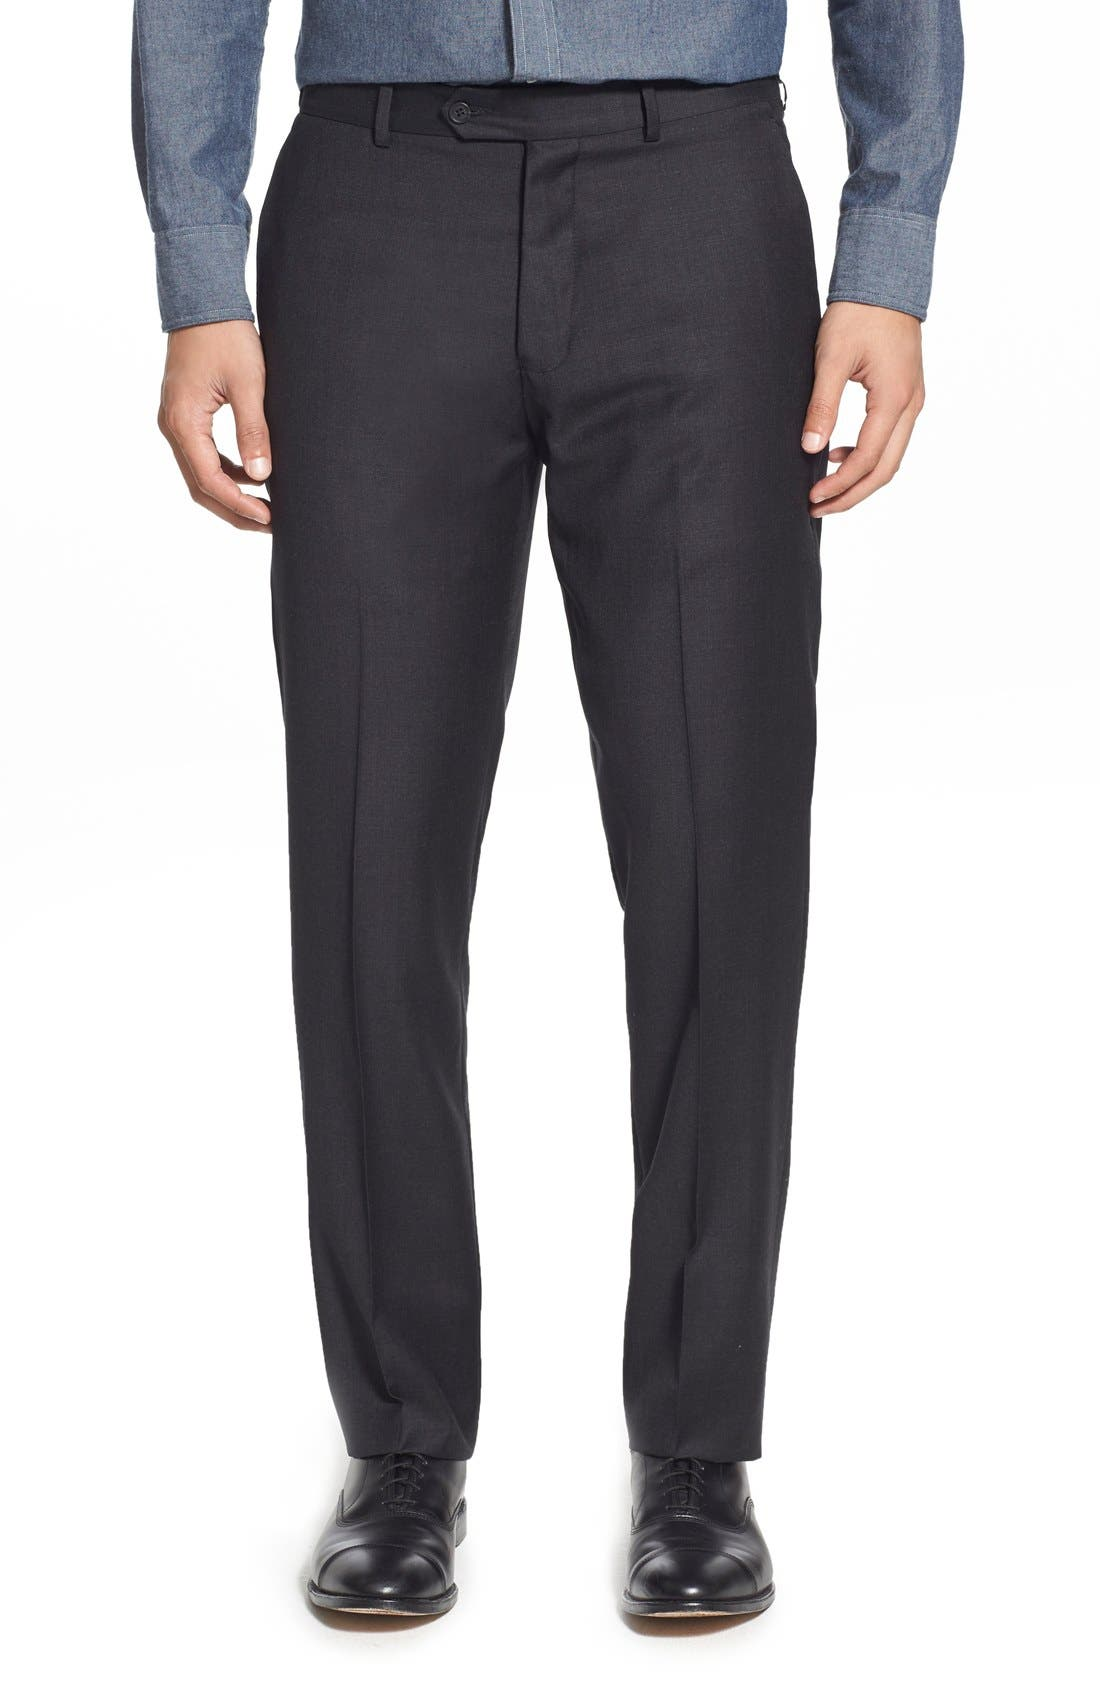 'Dagger' Flat Front Solid Wool Trousers,                         Main,                         color, 020